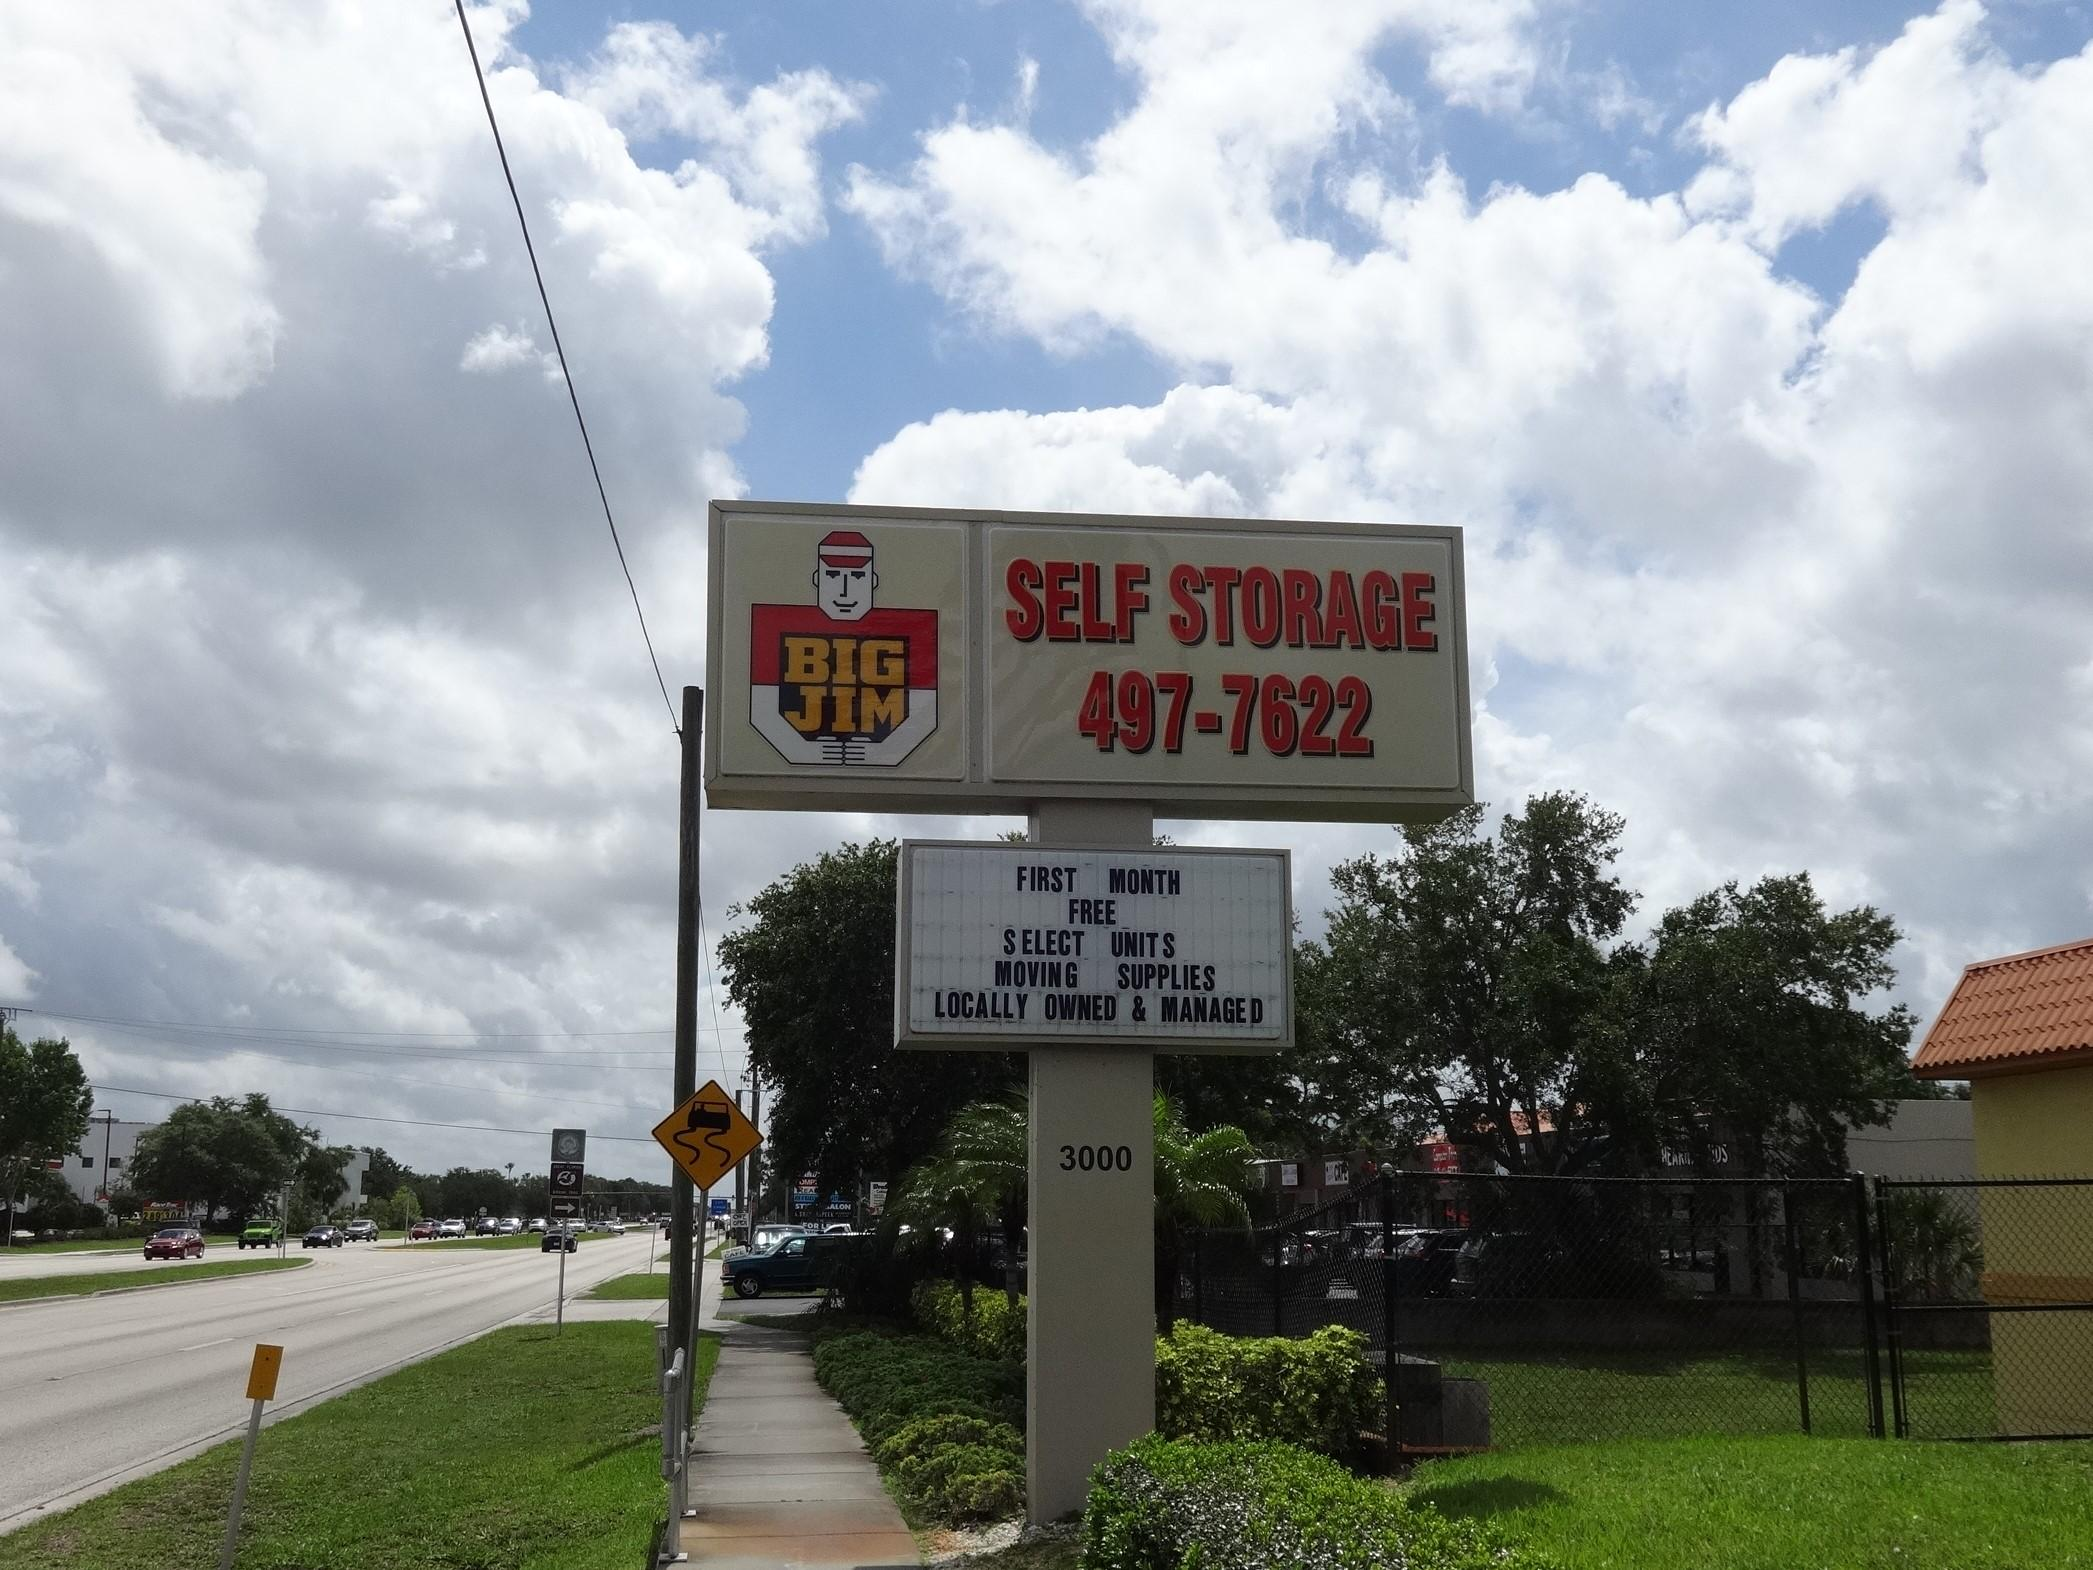 Big Jim Self Storage Street Sign in Venice, FL